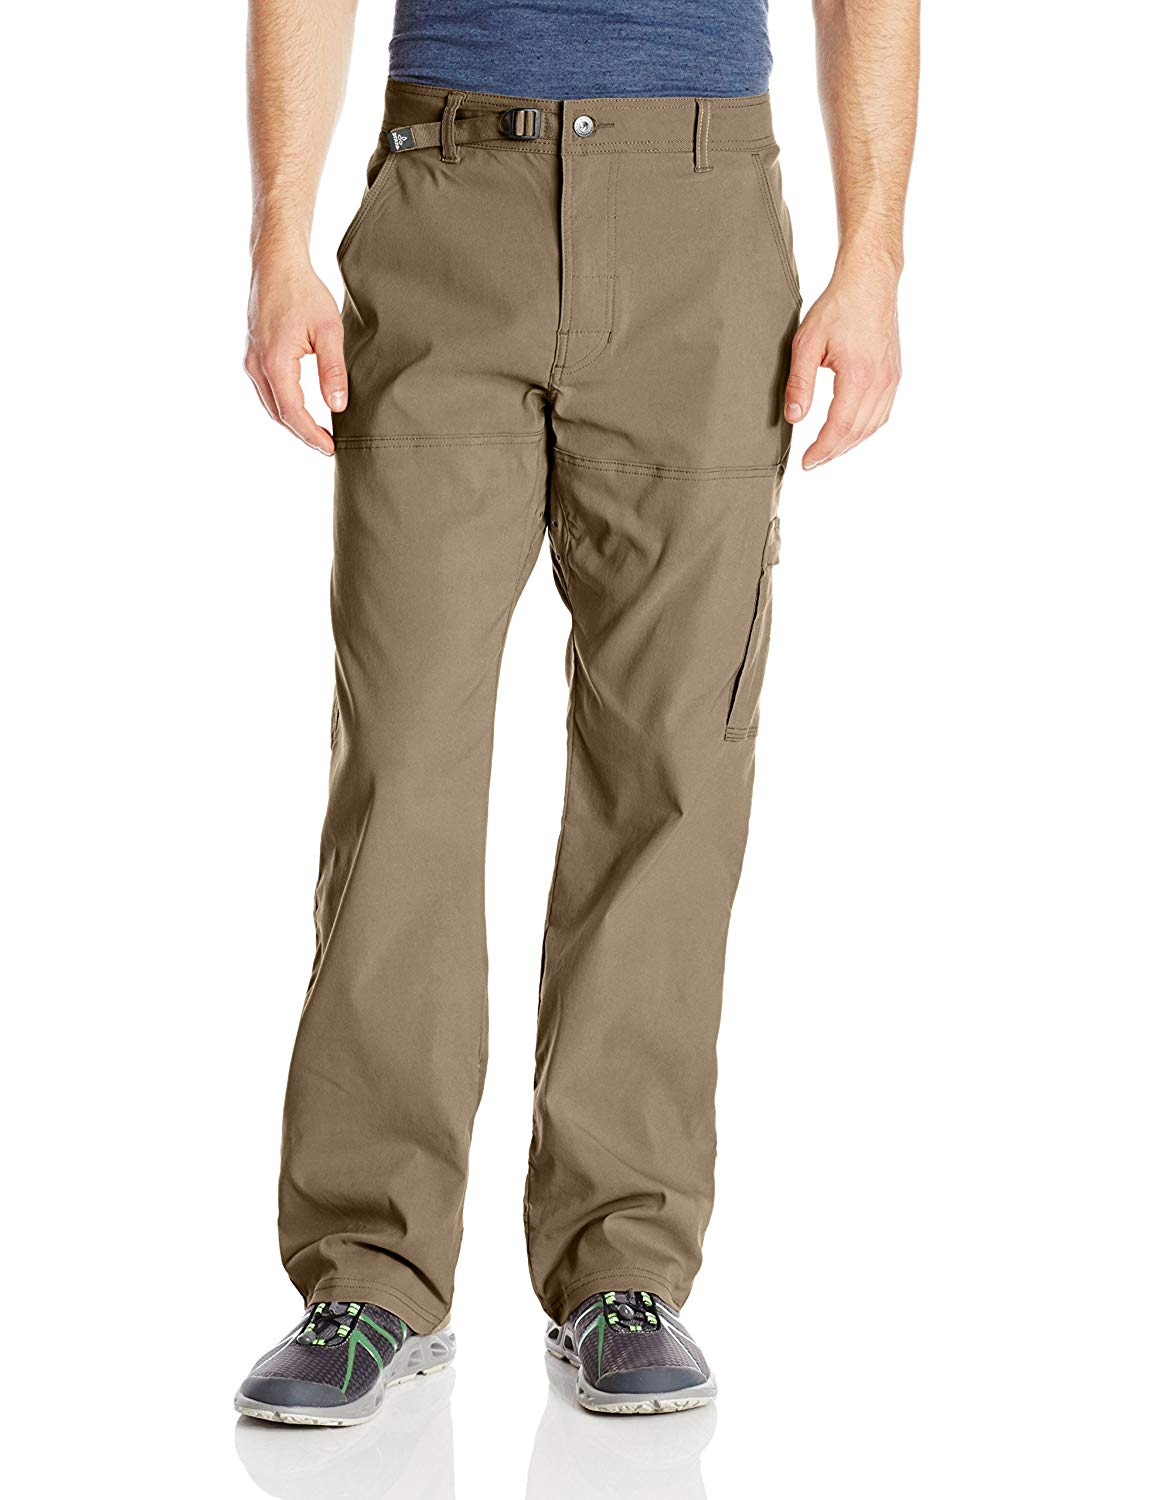 best hiking pants for men - Prana